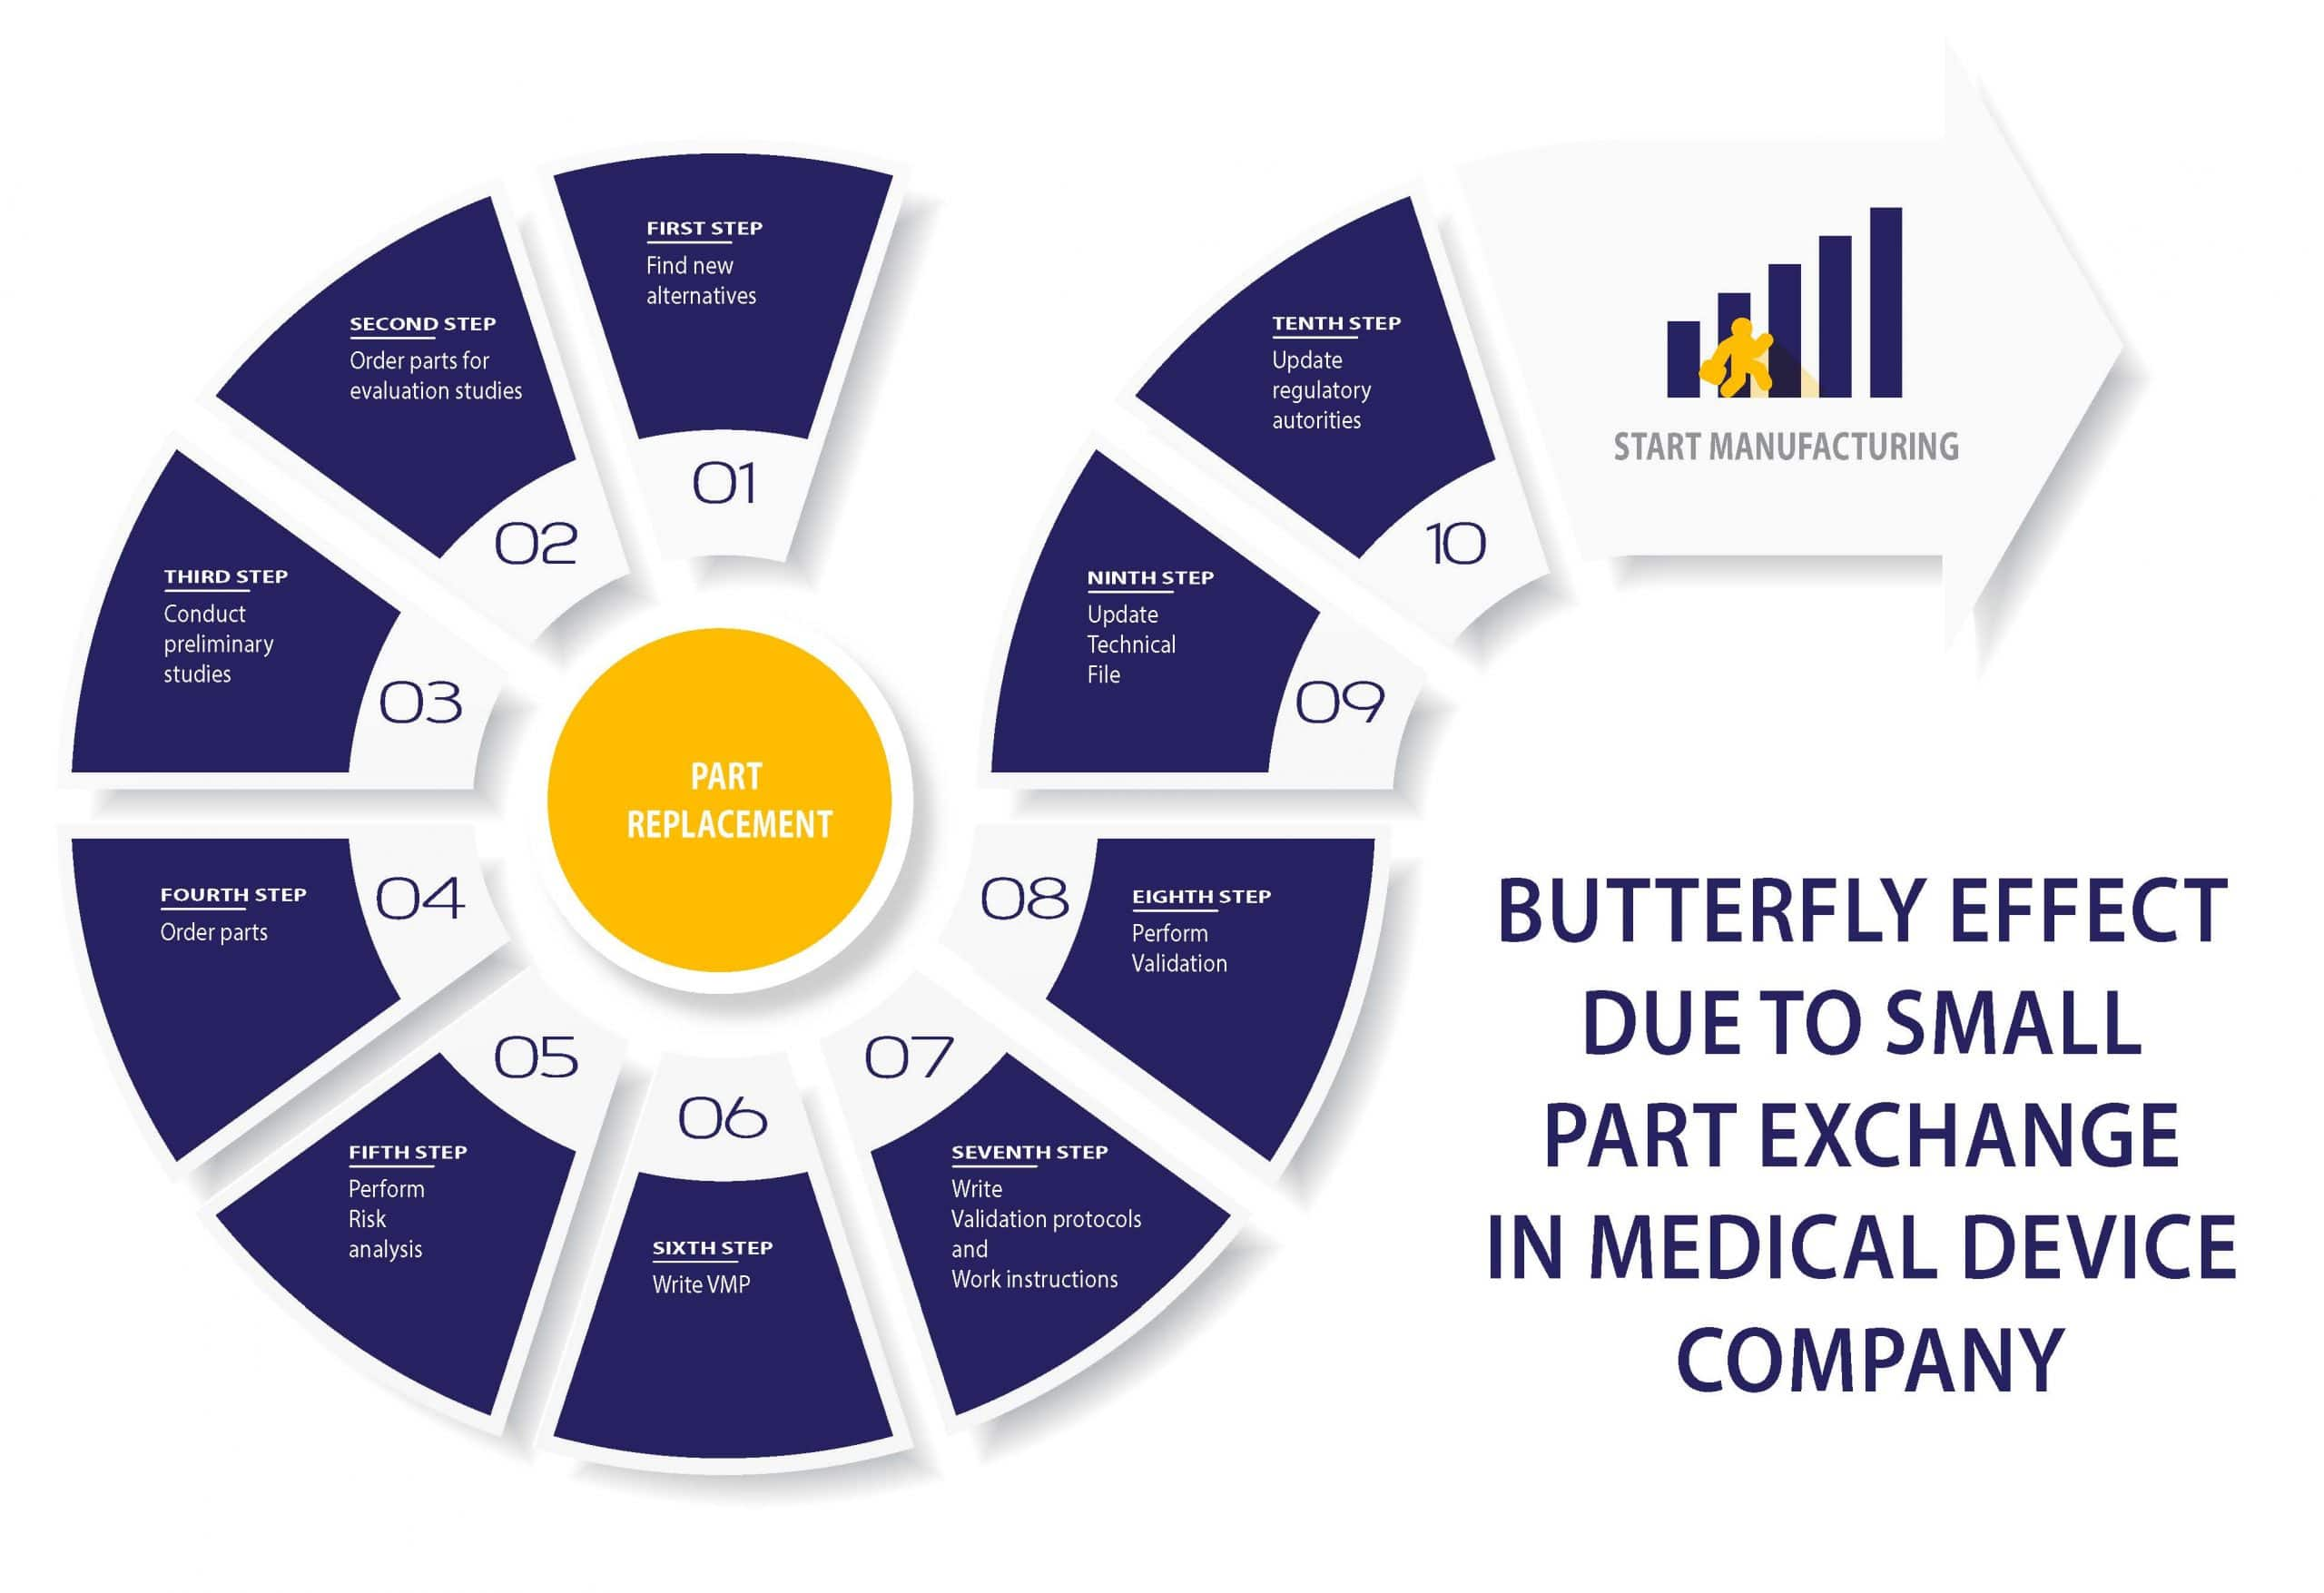 Butterfly effect due to a small part exchange in a Medical device company